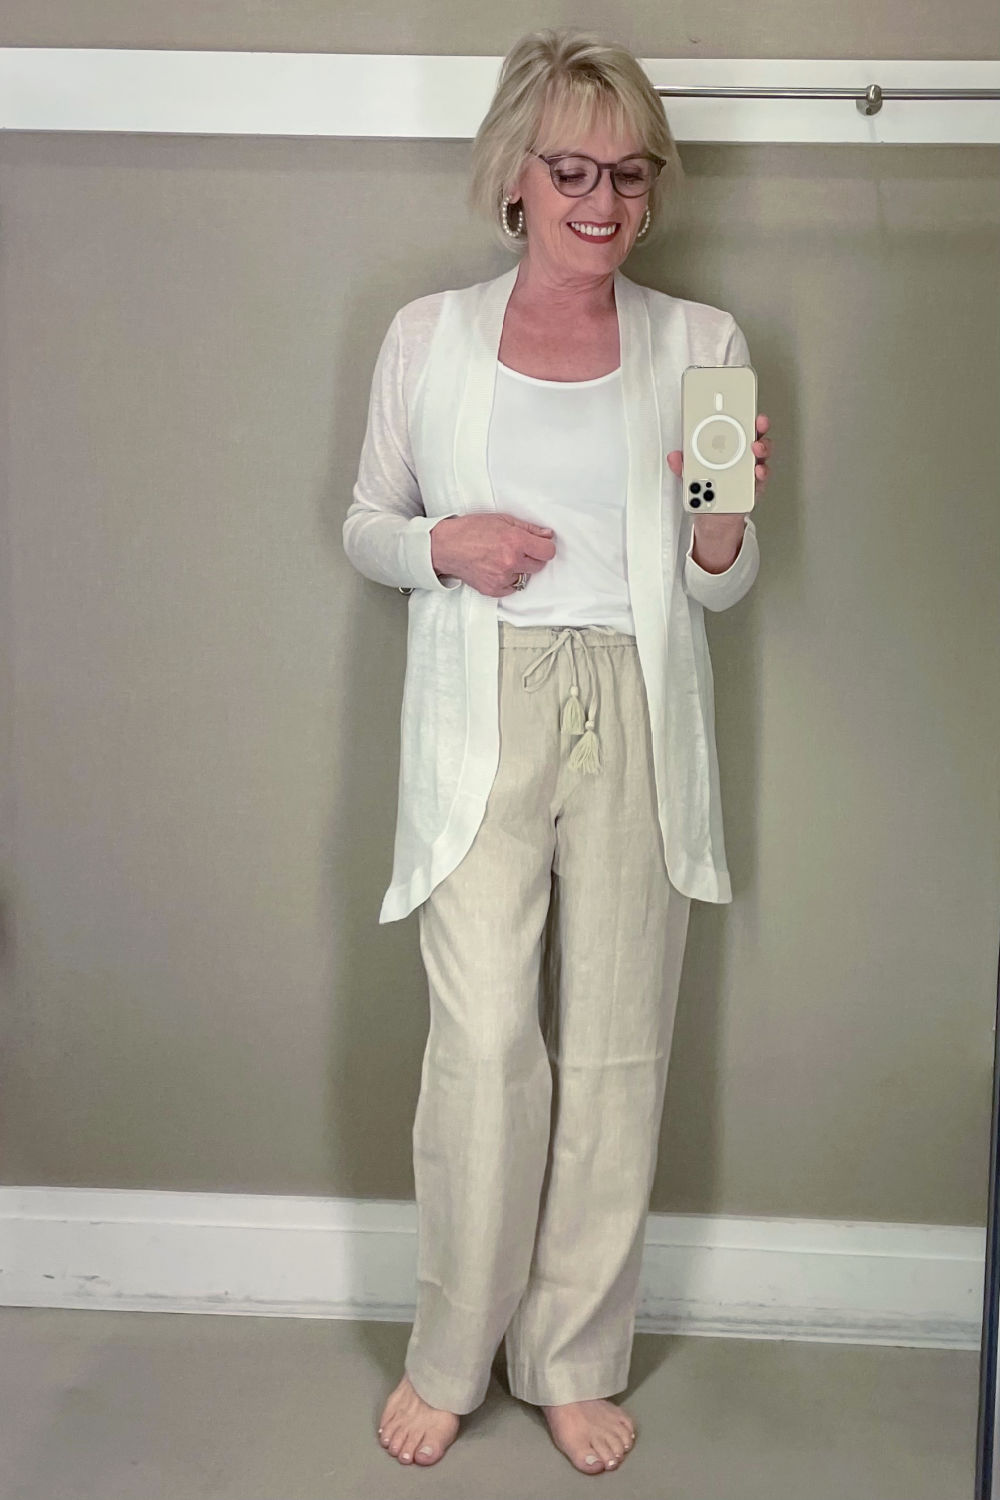 WOMAN TAKING SELFIE IN DRESSING ROOM WEARING WHITE CARDIGAN AND LINEN PANTS